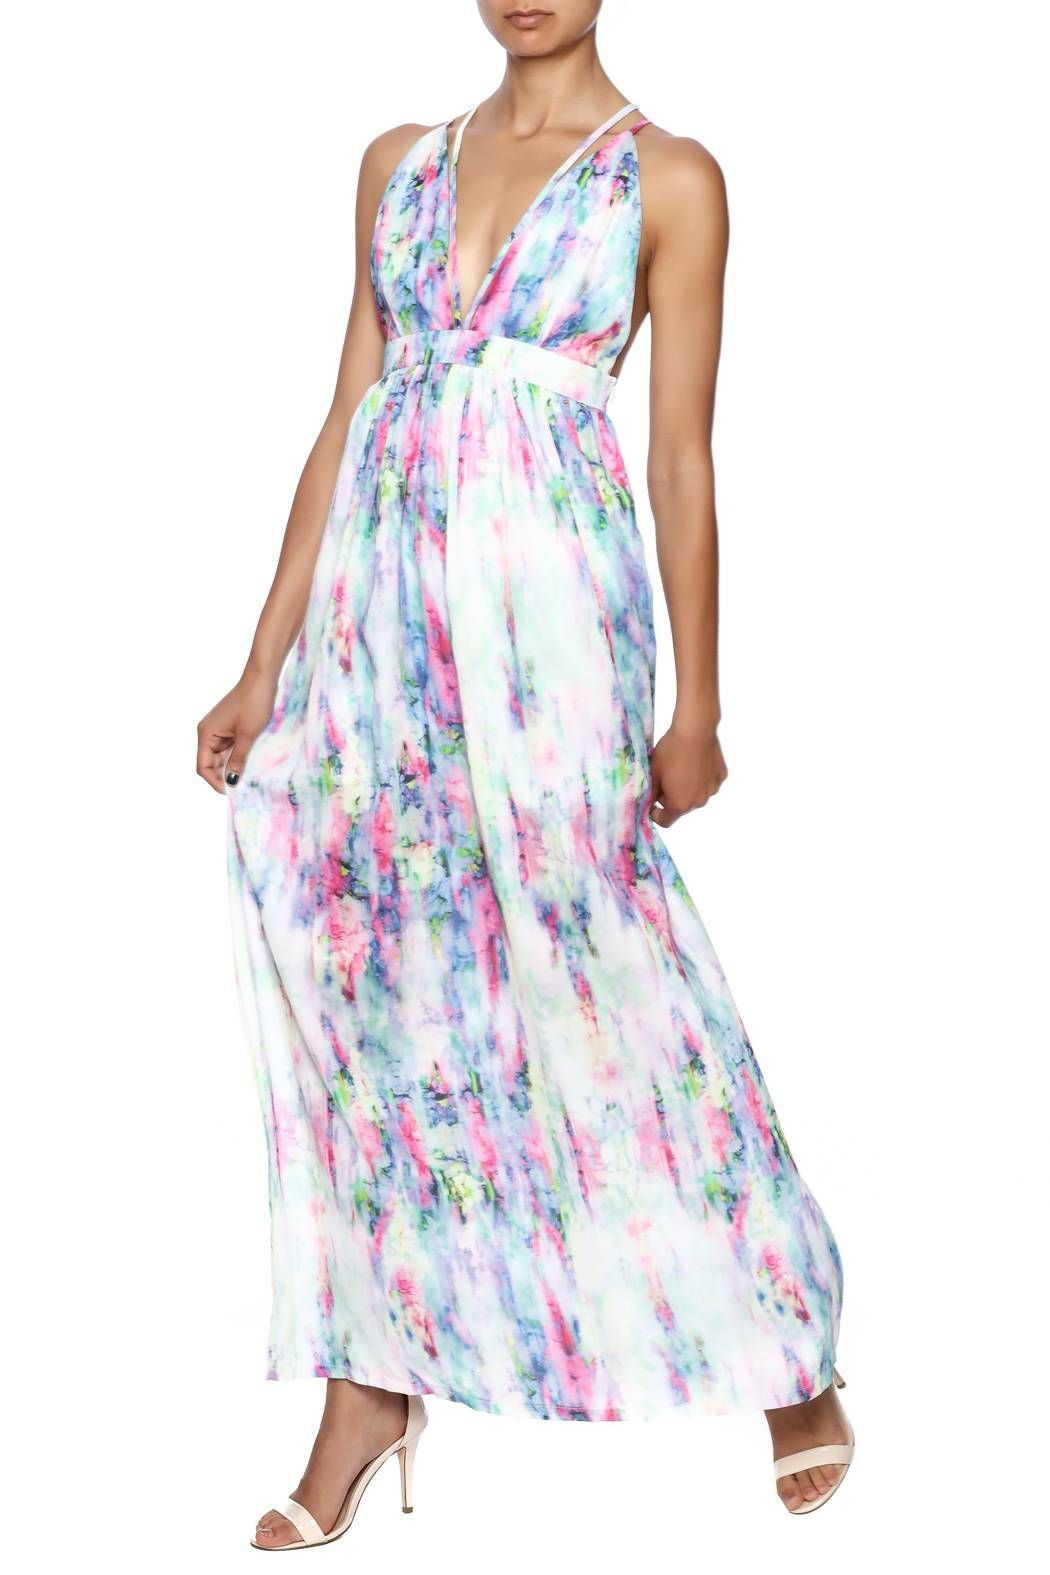 Flowy Chiffon Watercolor Print Maxi Dress With Stry Detail Back And Adjule Straps Water Paint By L Atiste